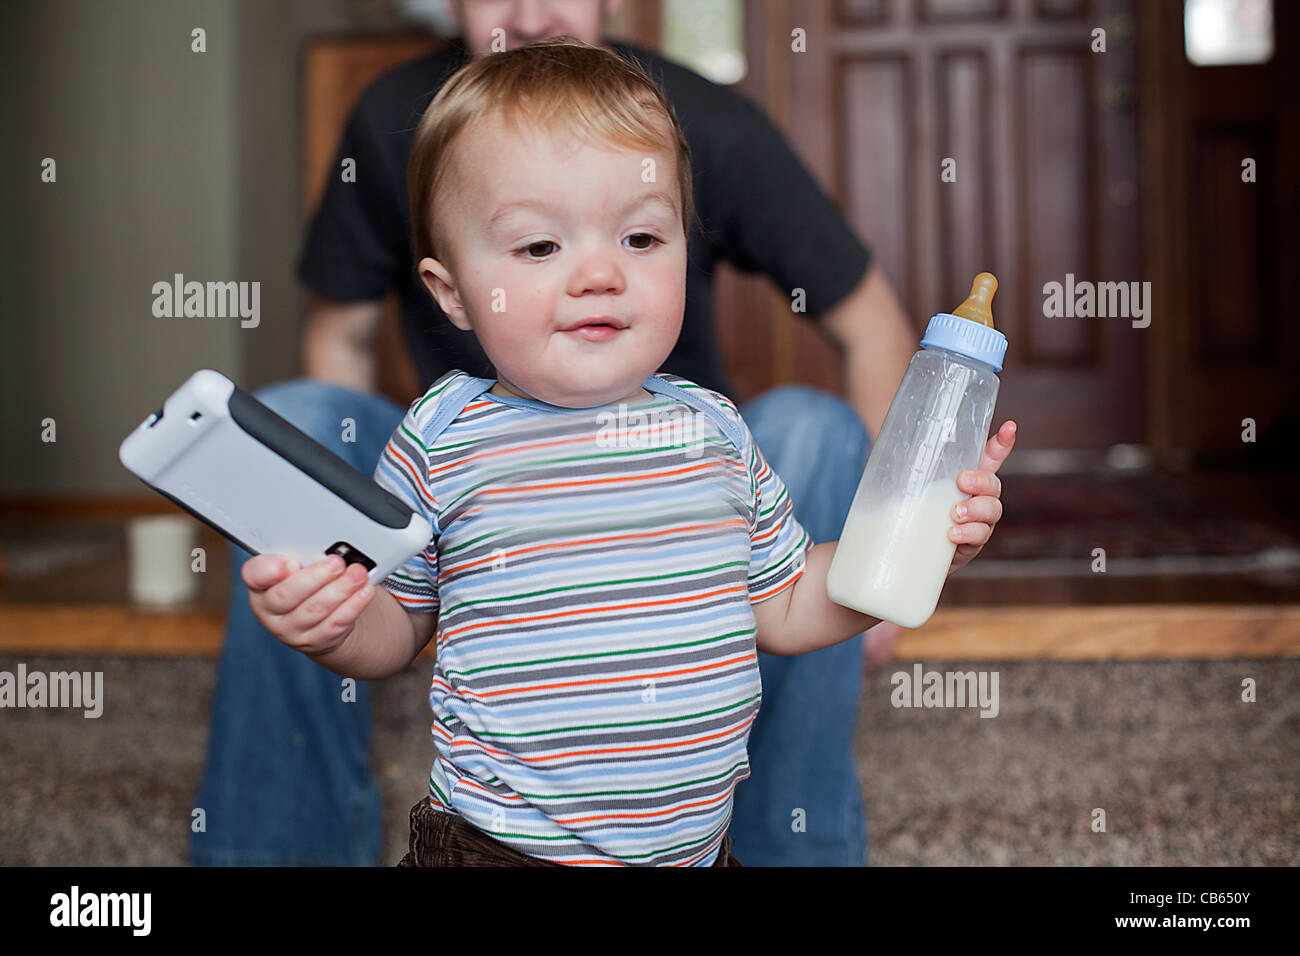 Toddler boy holding has bottle and a smart phone in his hands. - Stock Image